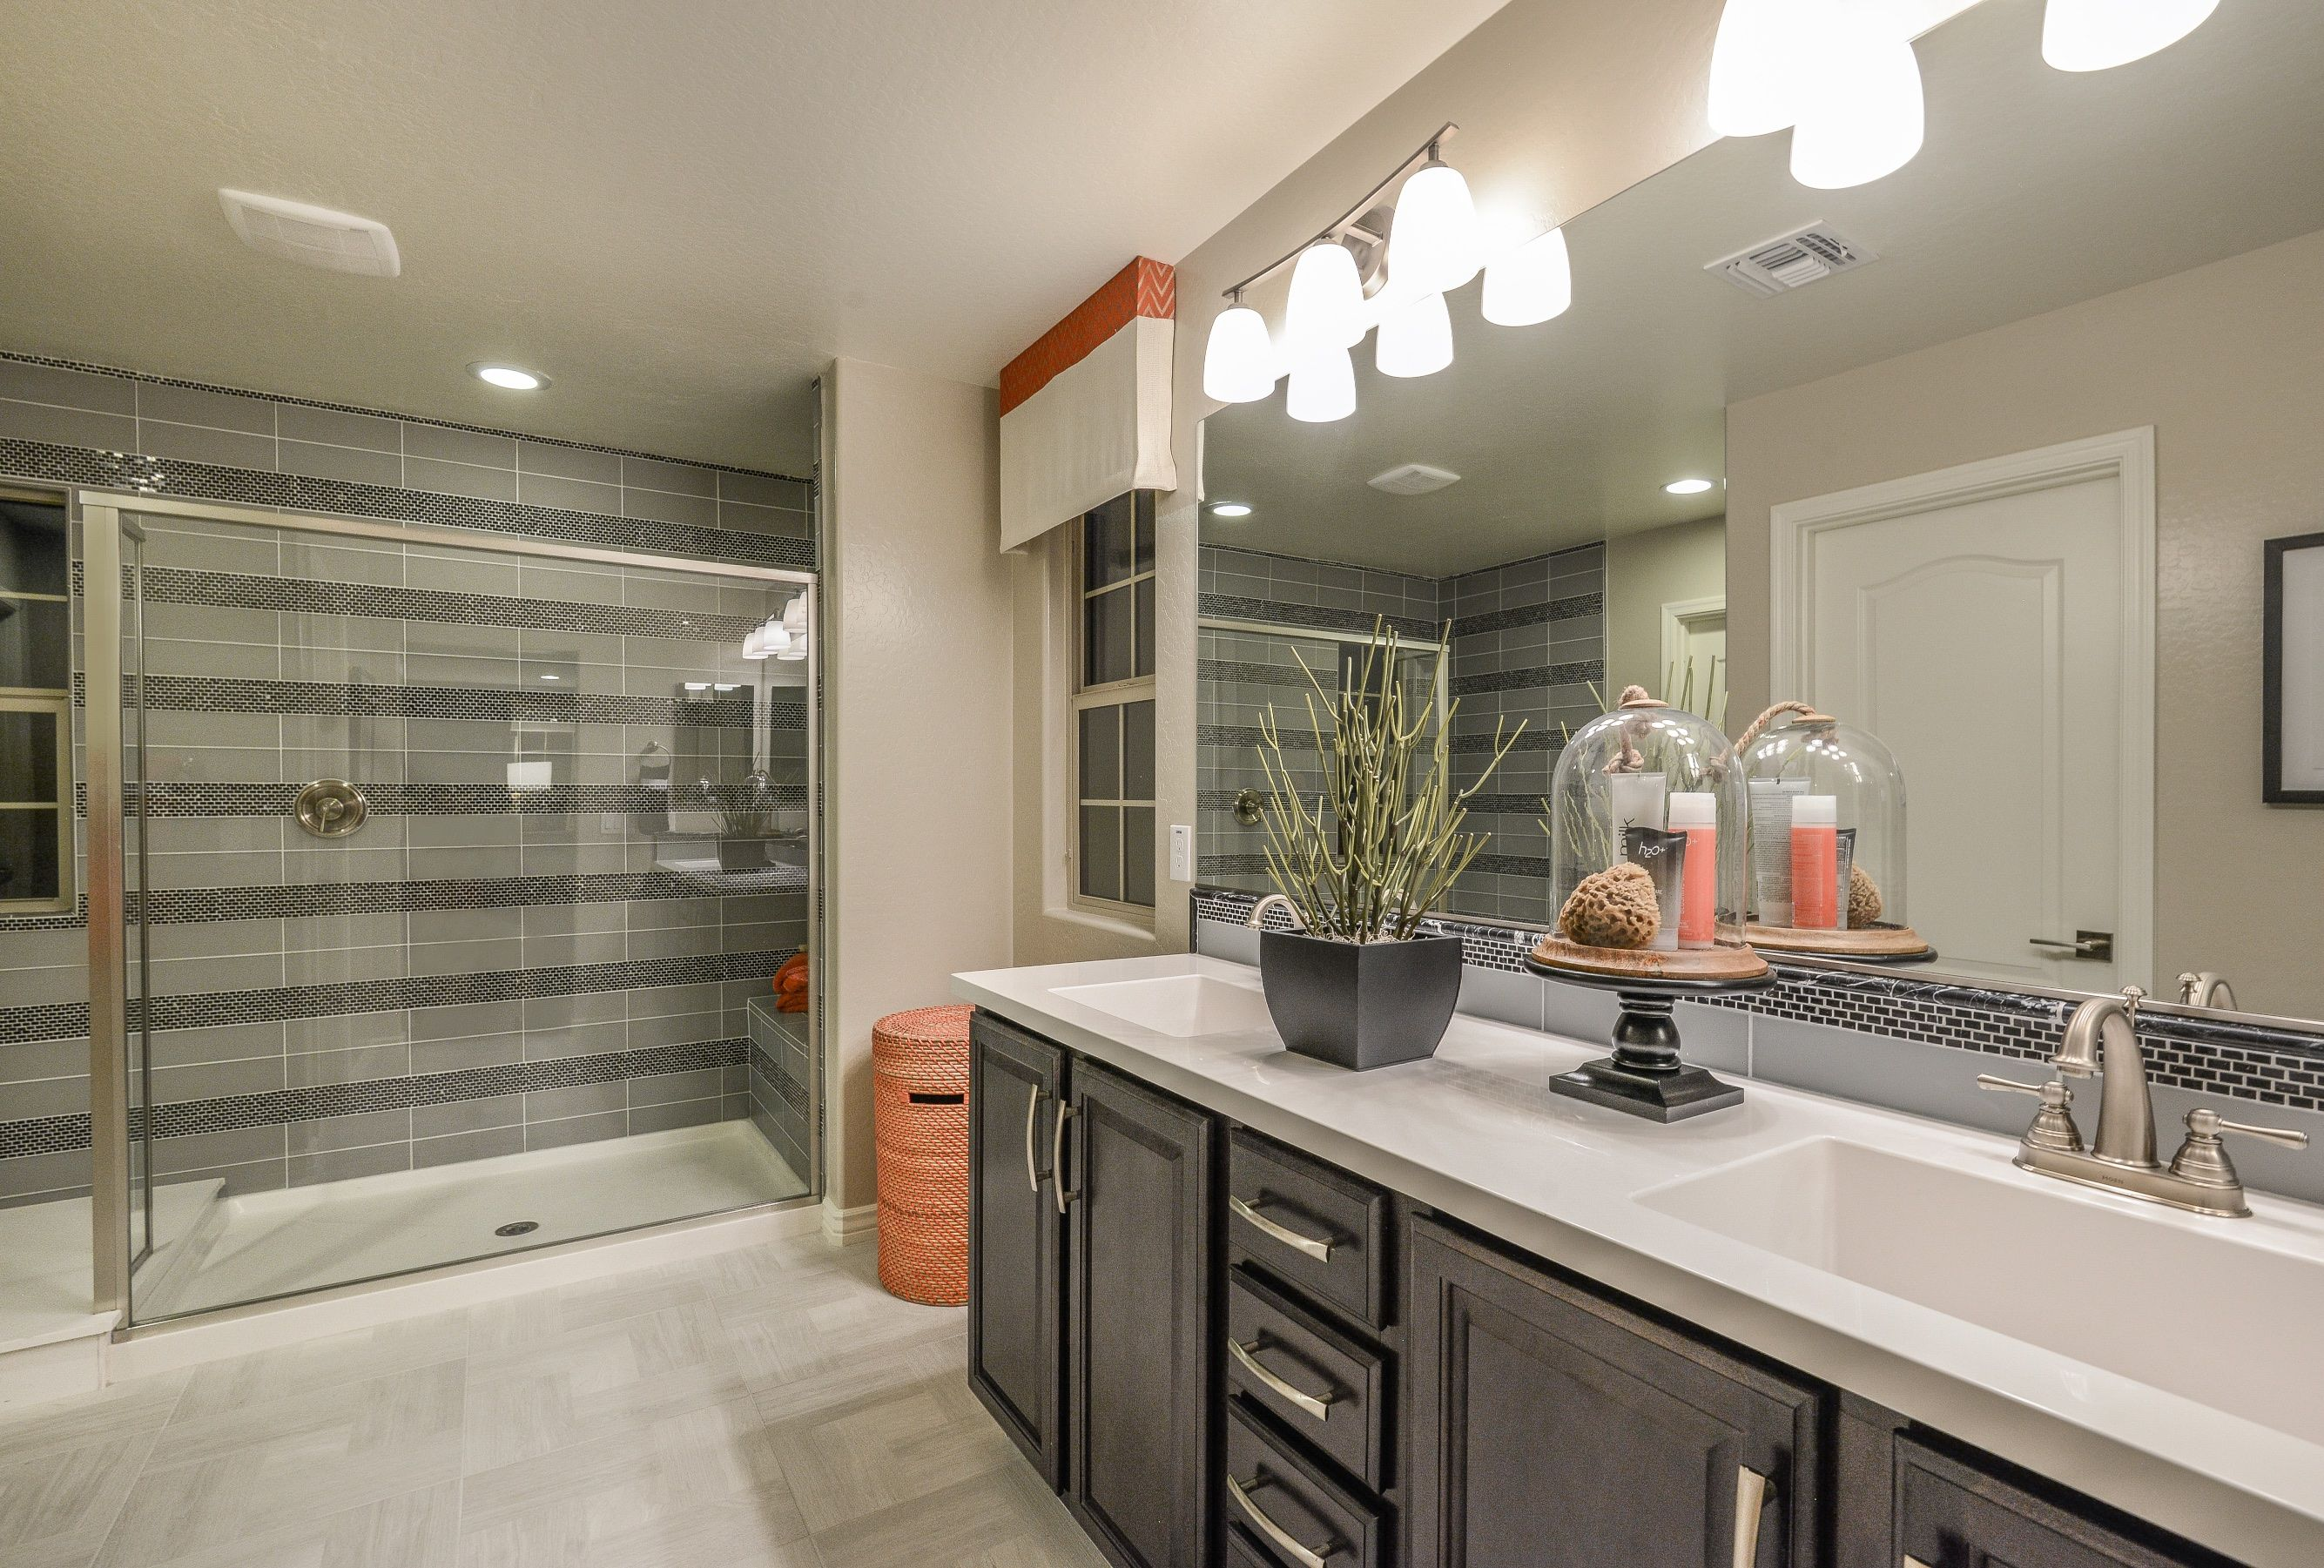 Fall in love with a bathroom that offers convience and